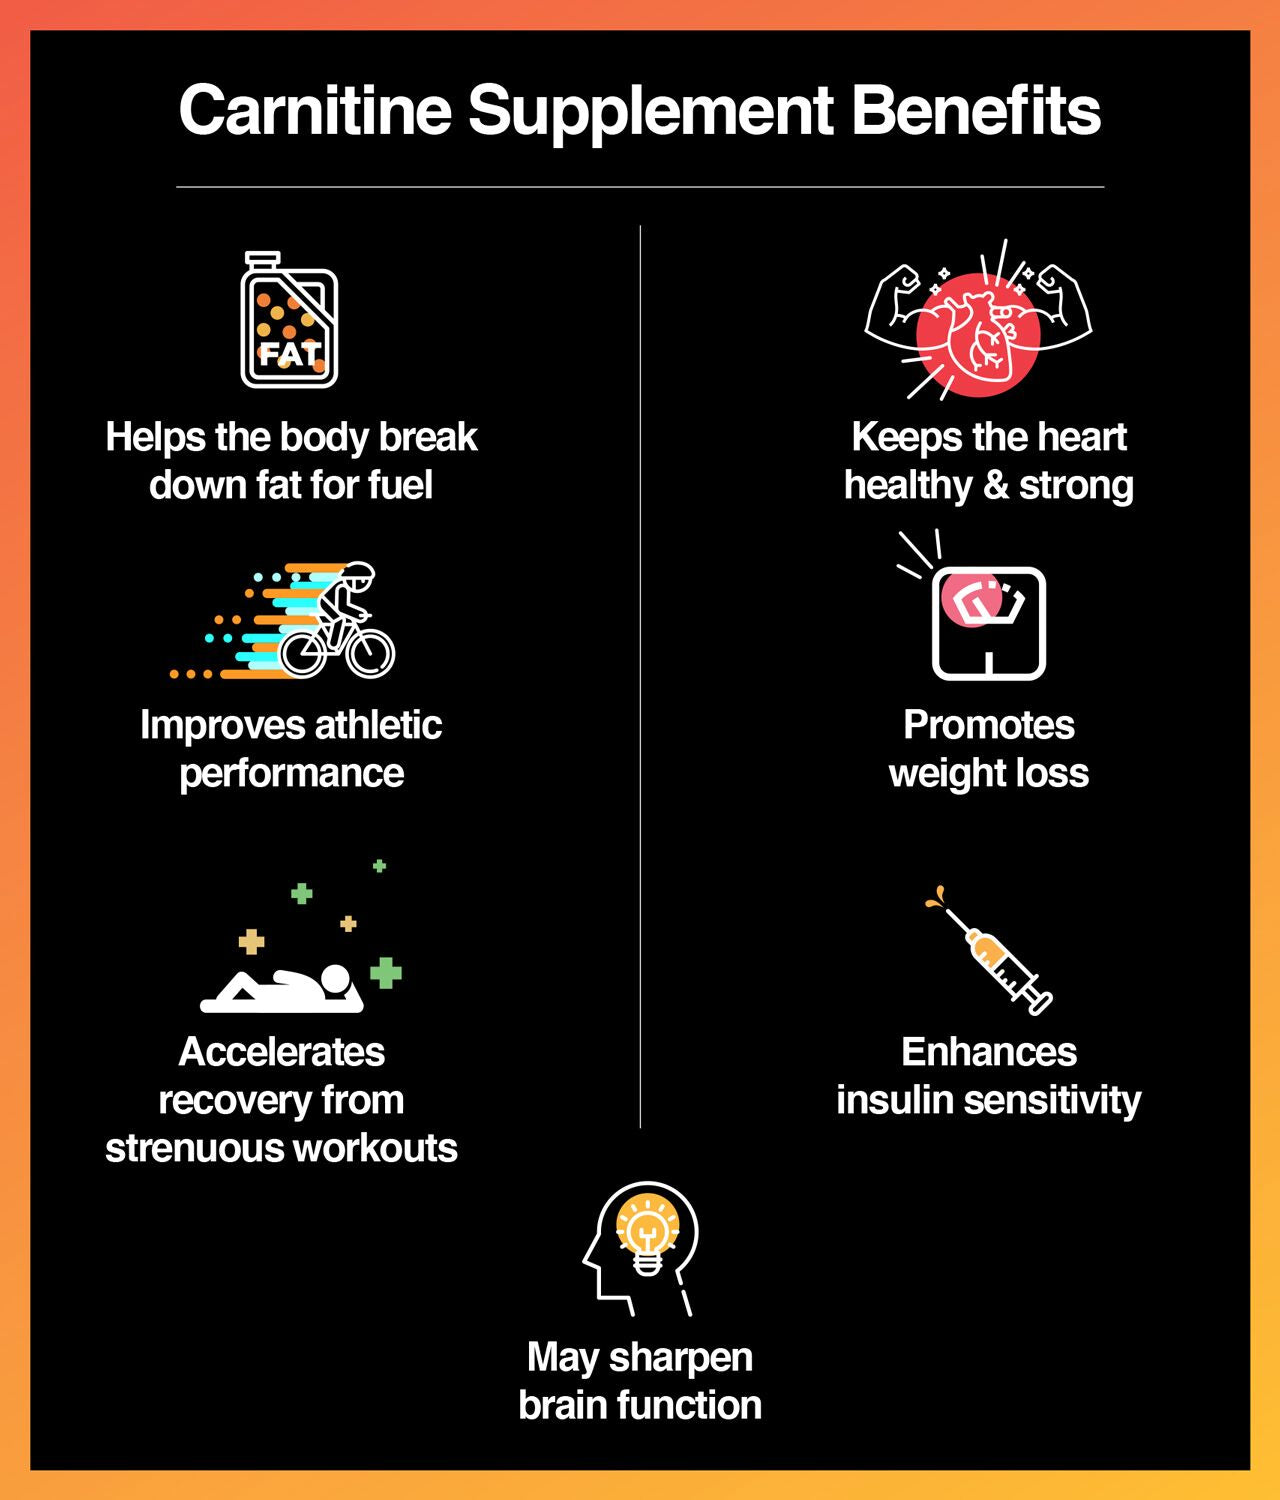 Carnitine helps the body break down fatty acids for energy.